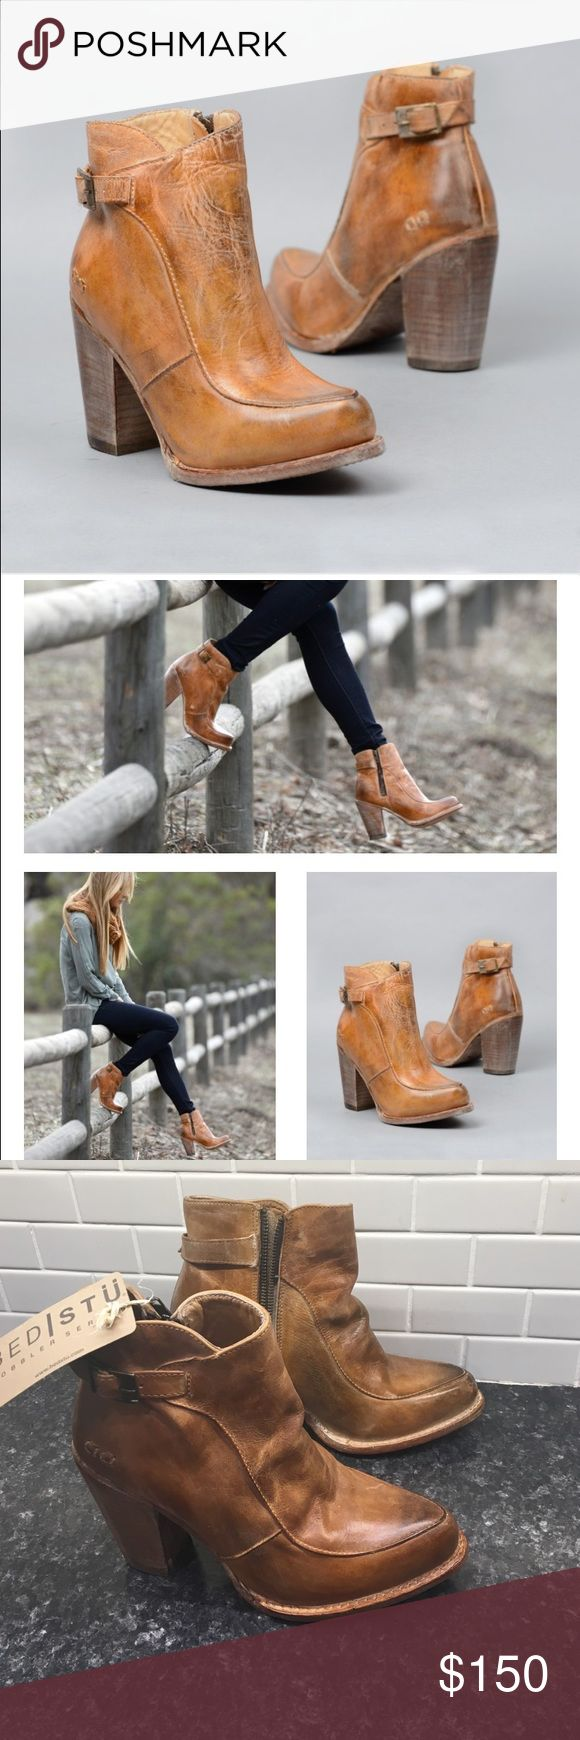 Bed Stu Isla Boots 🌺 Gorgeous boots- Bed Stu is my favorite and I have a habit of buying a few at once. These are new with tags- natural stress on leather. Cool to wear with basically anything! z#0145 Bed Stu Shoes Ankle Boots & Booties